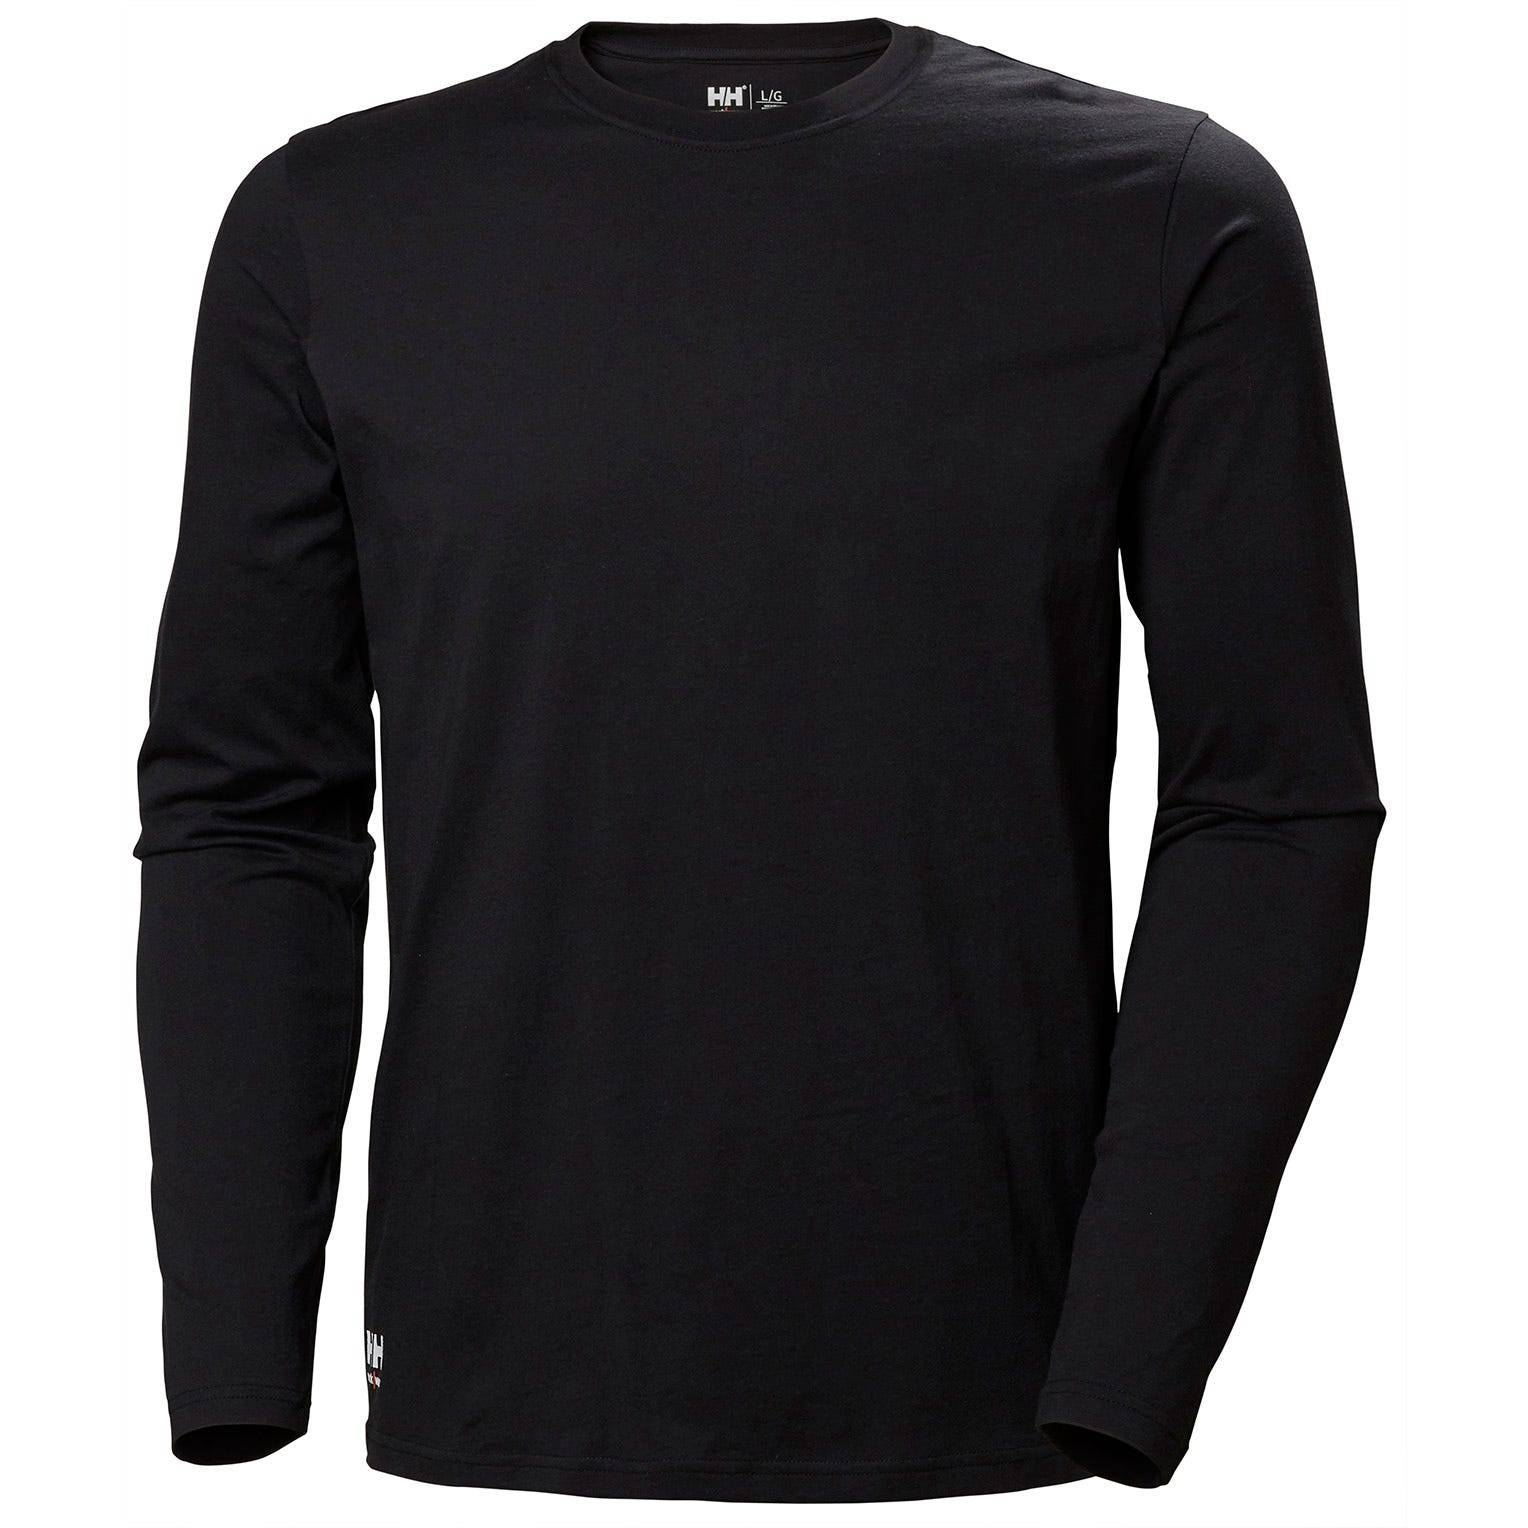 HH Workwear Helly Hansen WorkwearManchester Long Sleeve Black XL